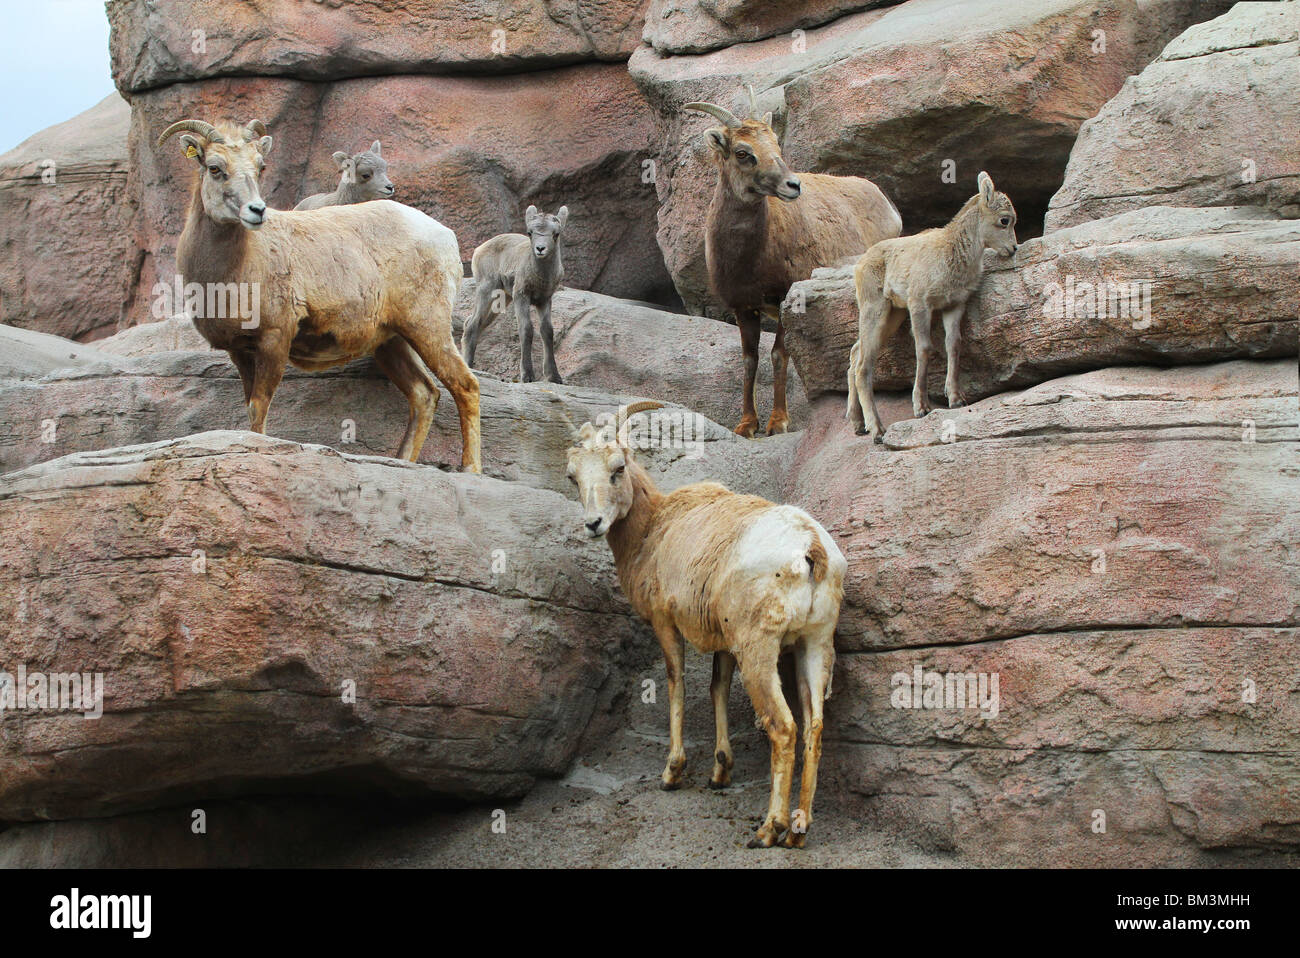 MS-369D, THREE BIGHORN SHEEP EWES AND LAMBS - Stock Image